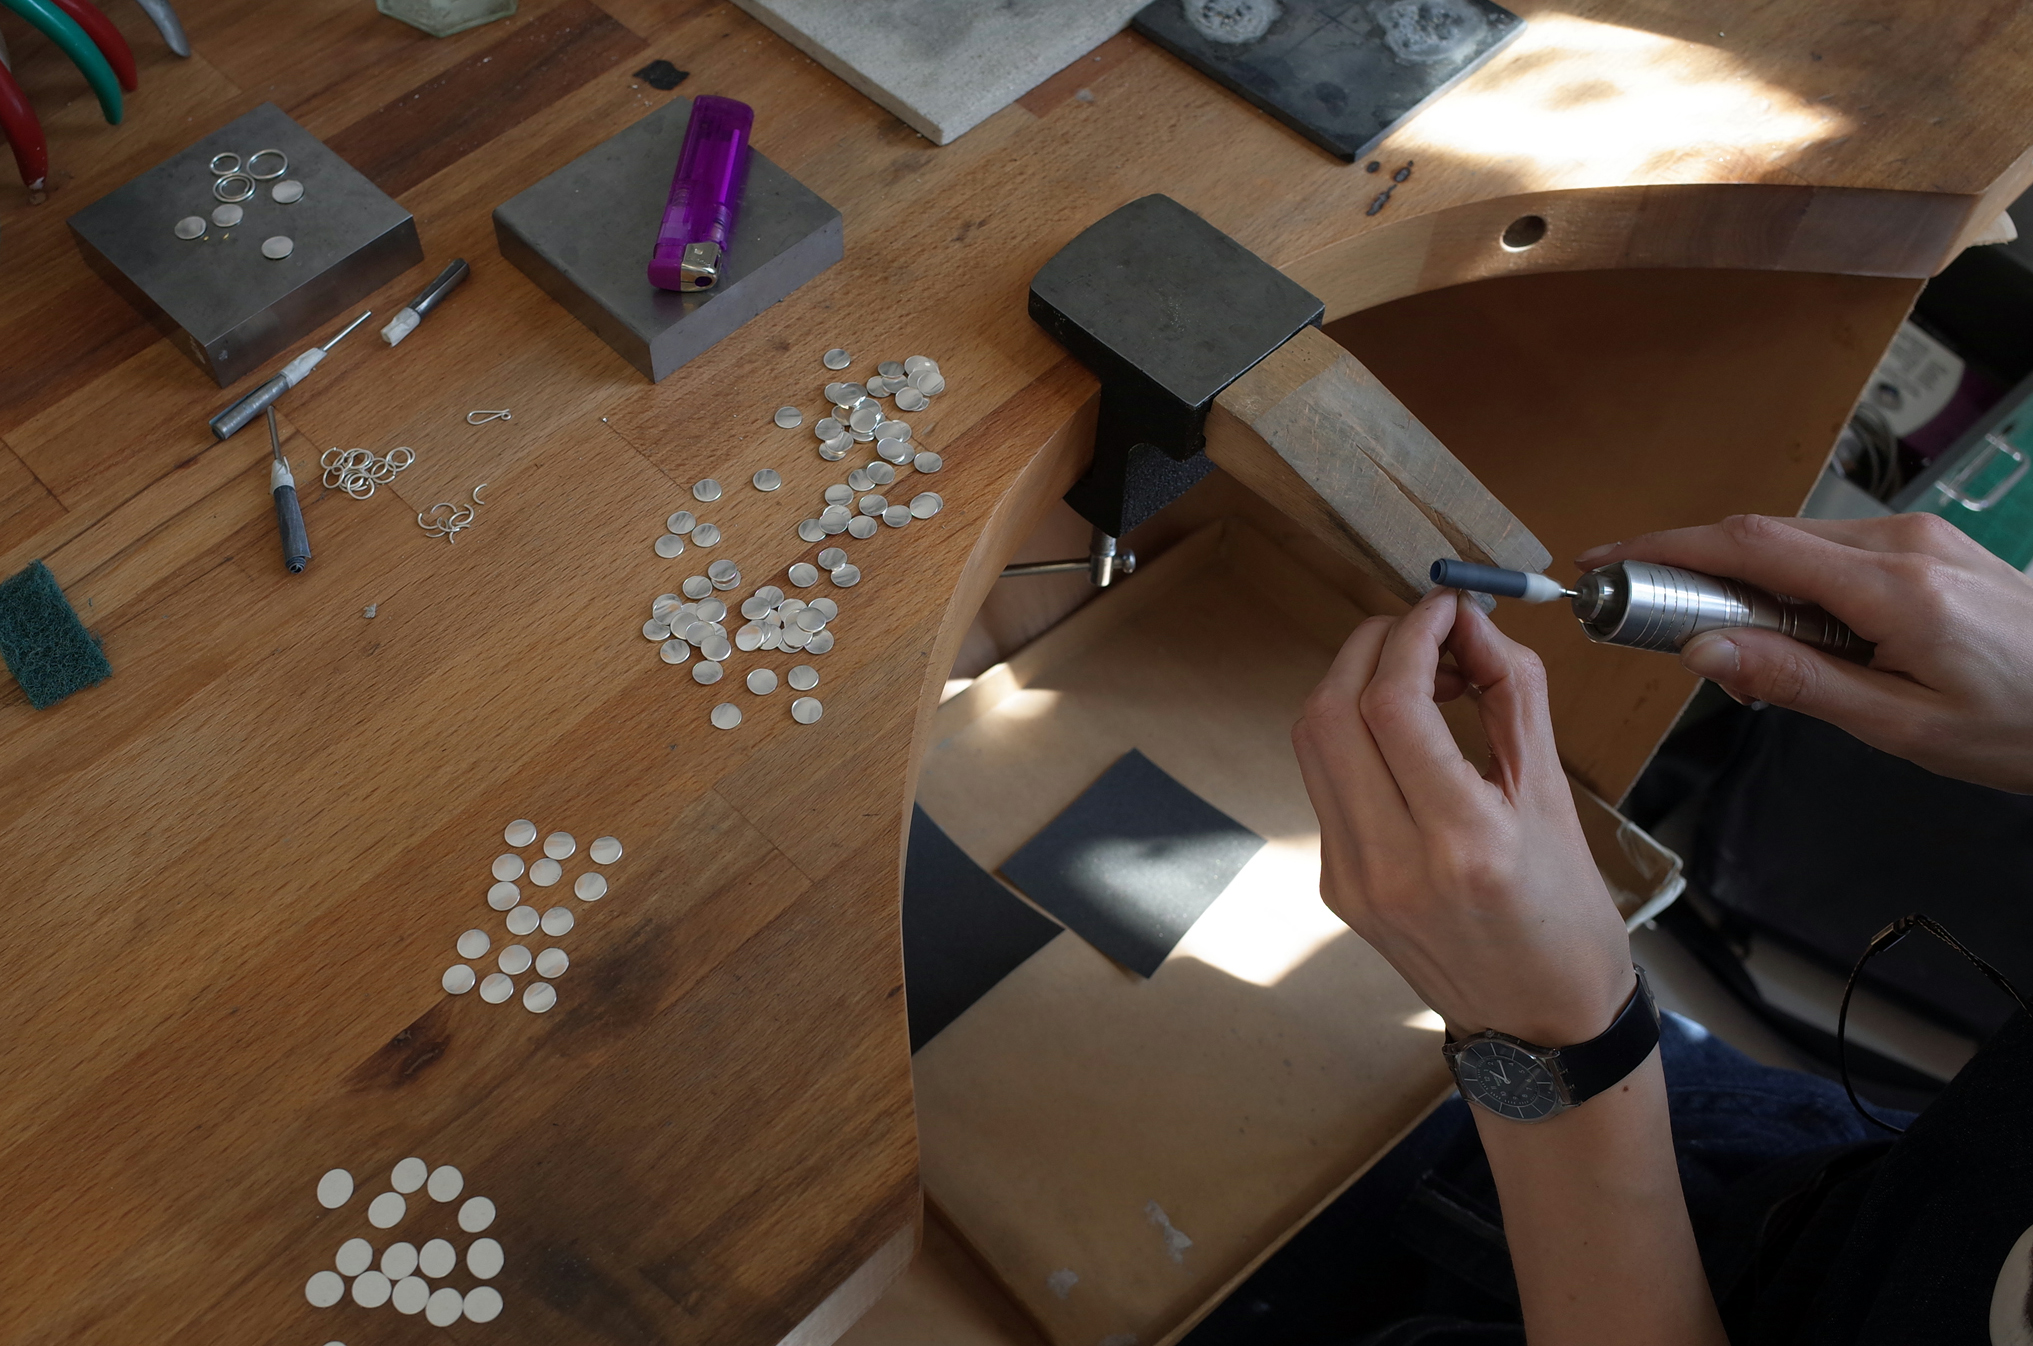 deburring and polishing the edges of each and every component